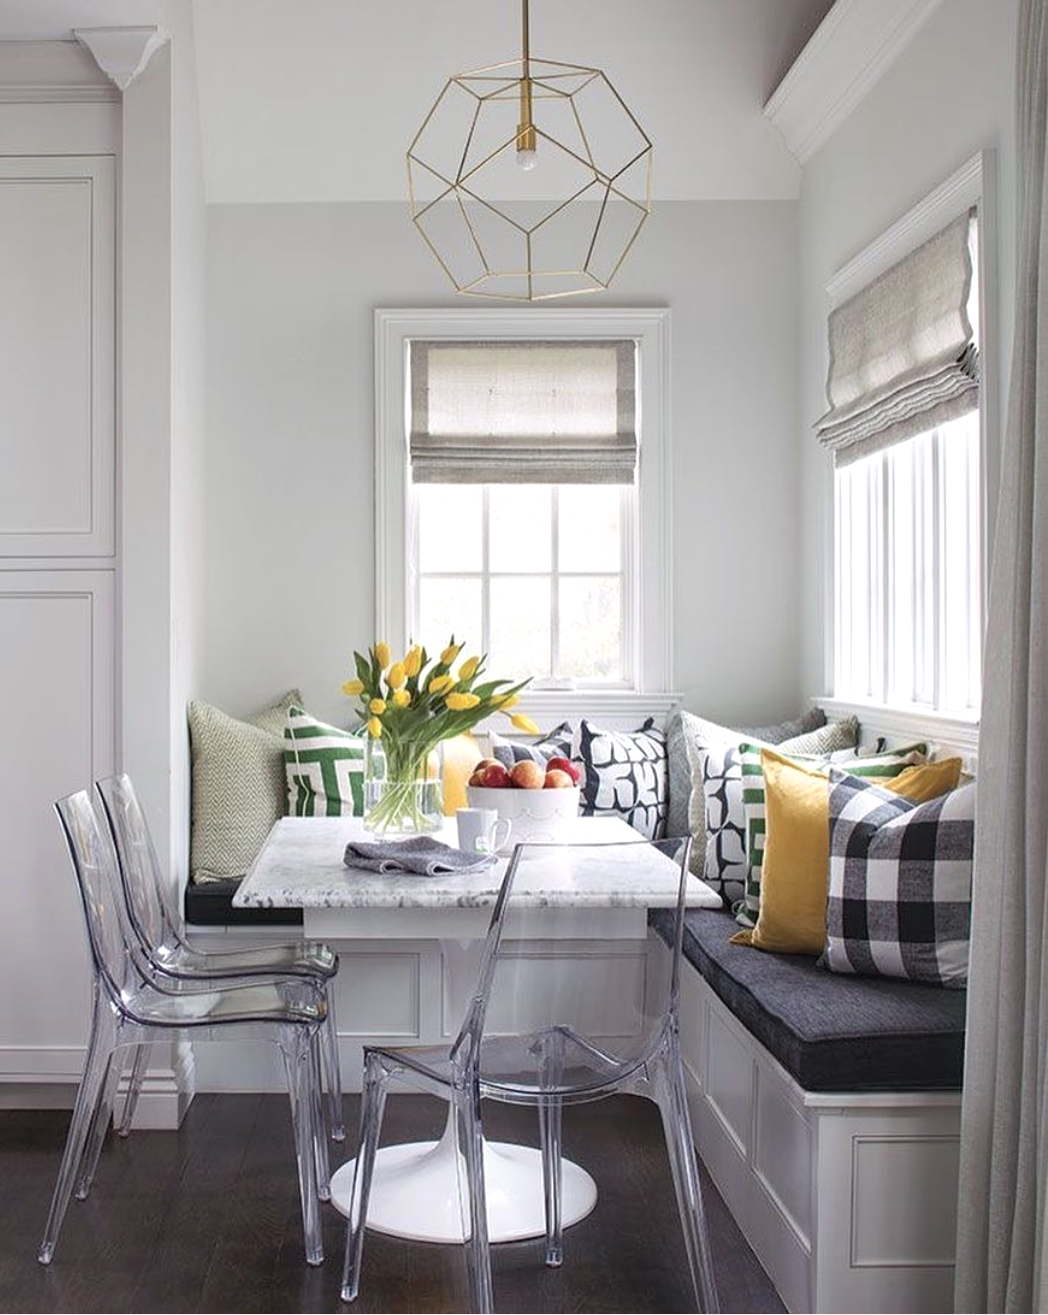 9 Kitchen Nook Ideas so Sweet You'll Almost You're